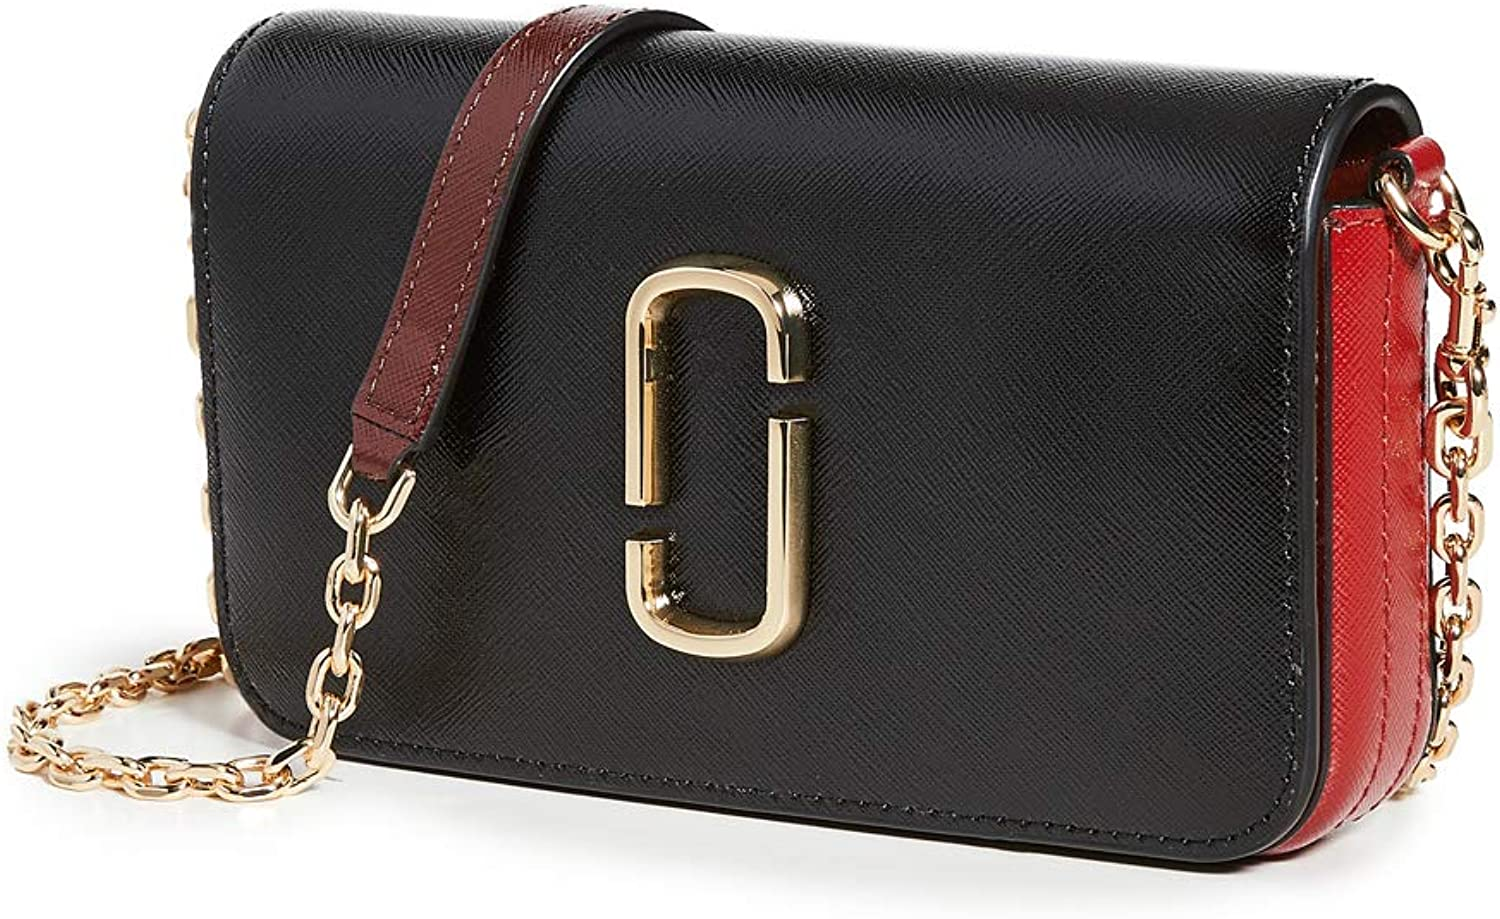 The Marc Jacobs Women's Snapshot Crossbody with Chain